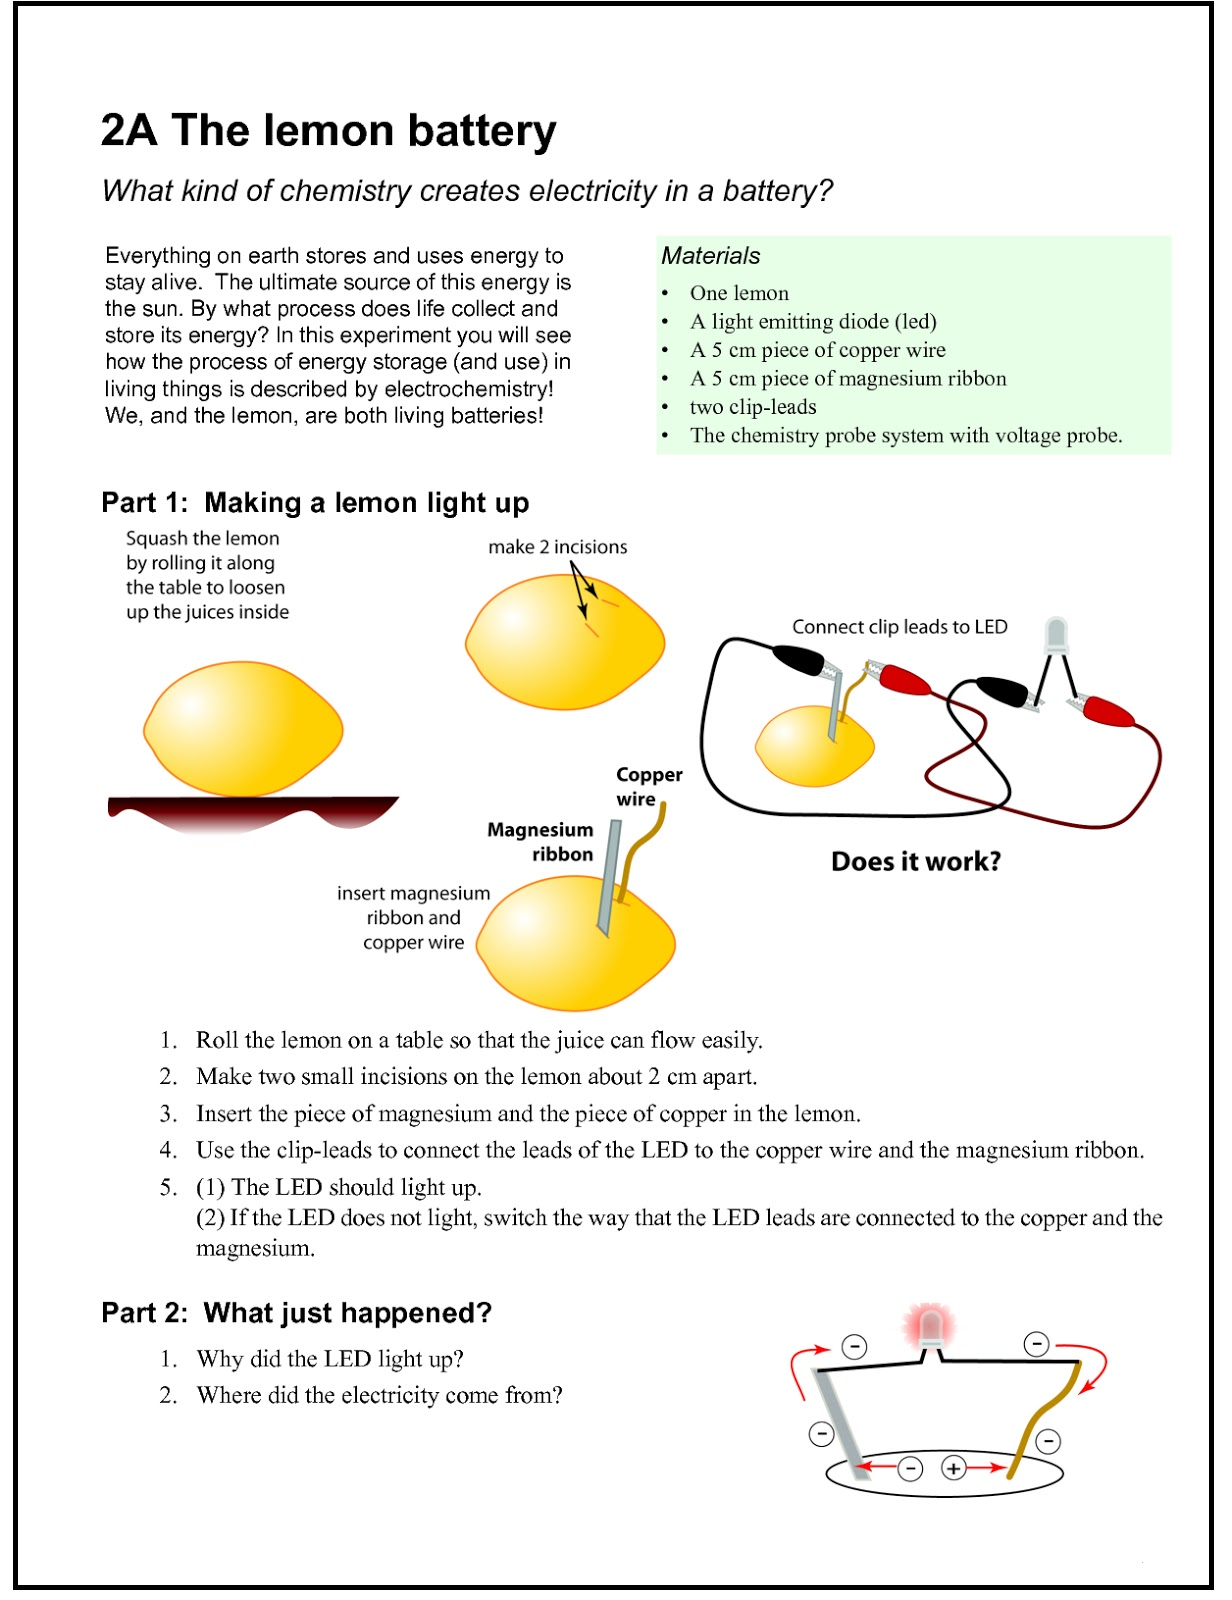 electrical and electronics engineering how to make lemon battery rh eee resetsg blogspot com Lemon Battery Chart How Does a Lemon Battery Work